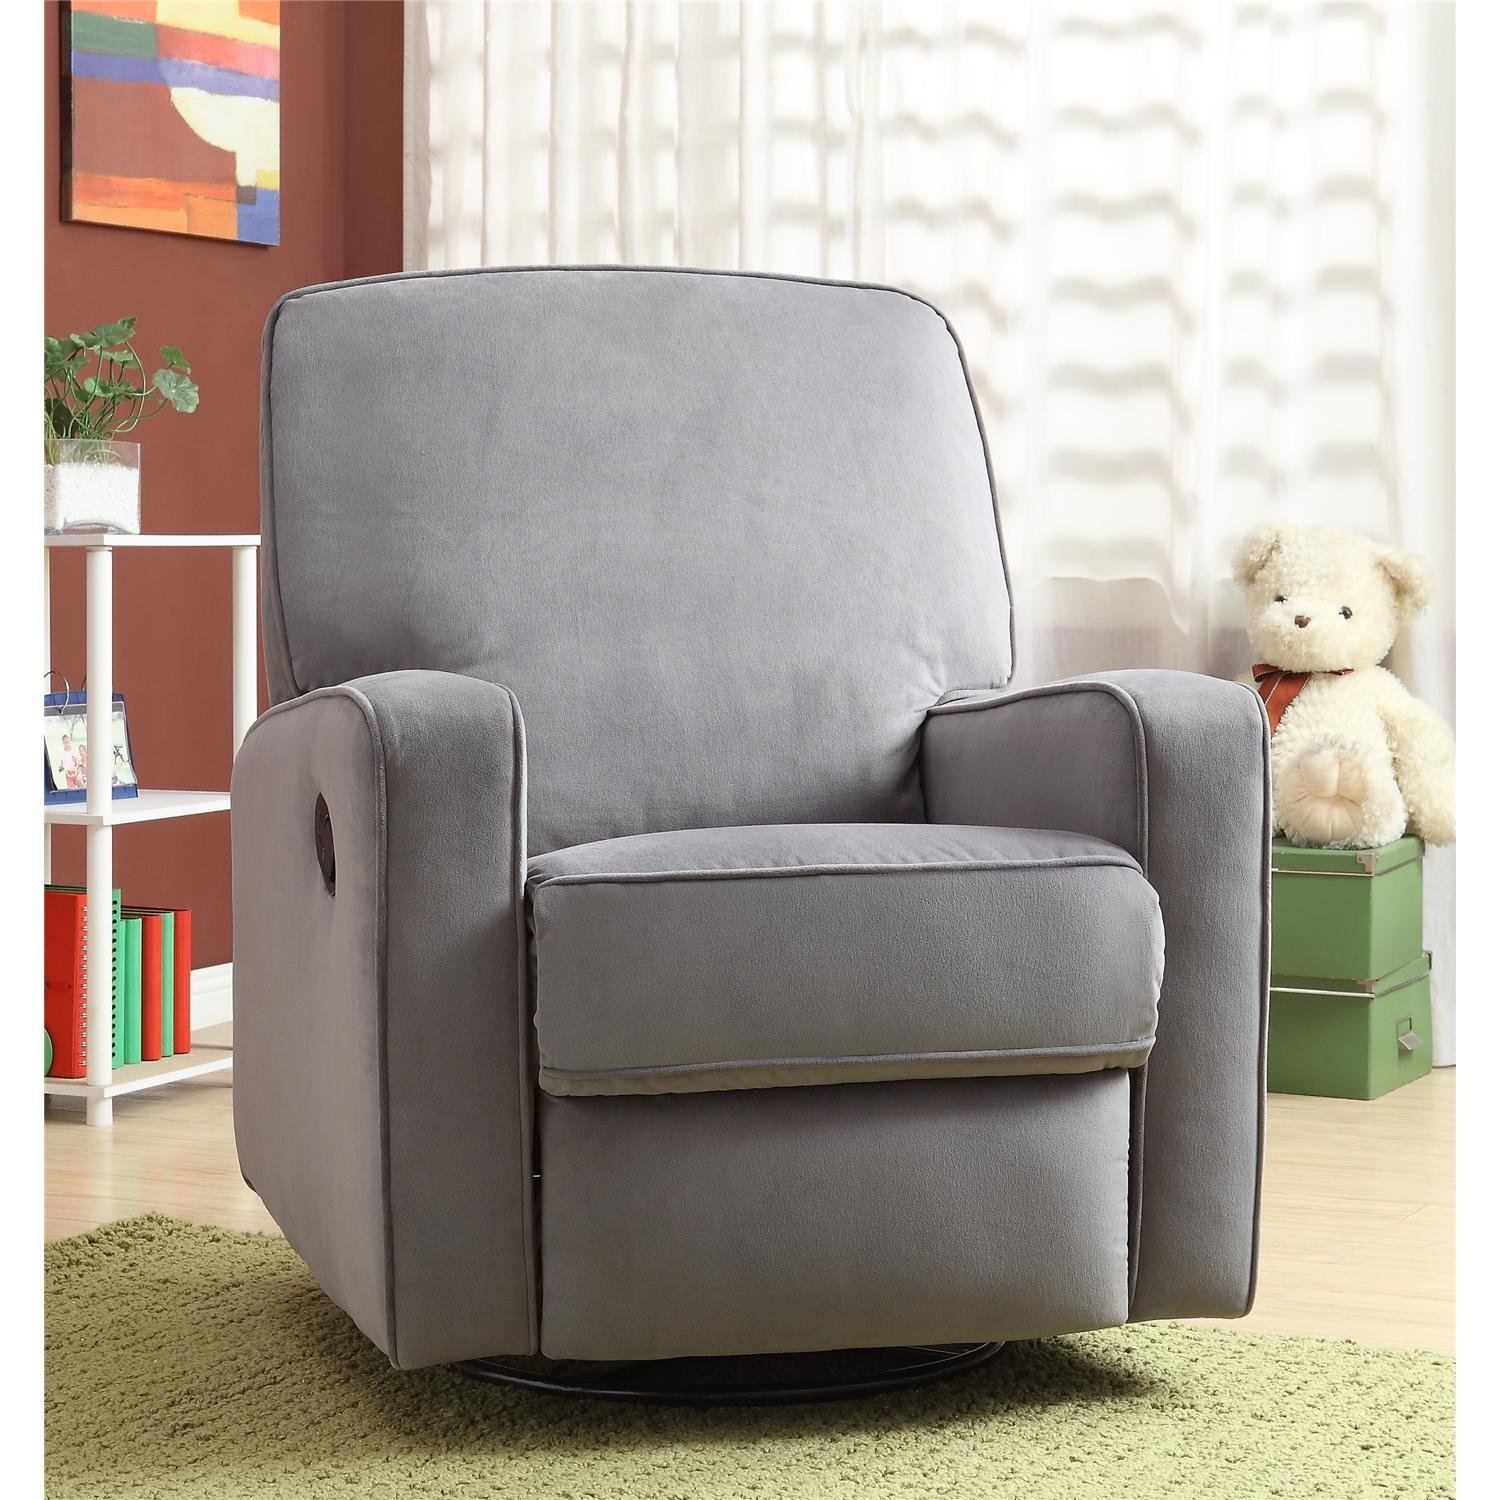 Image of: simple glider recliner chair